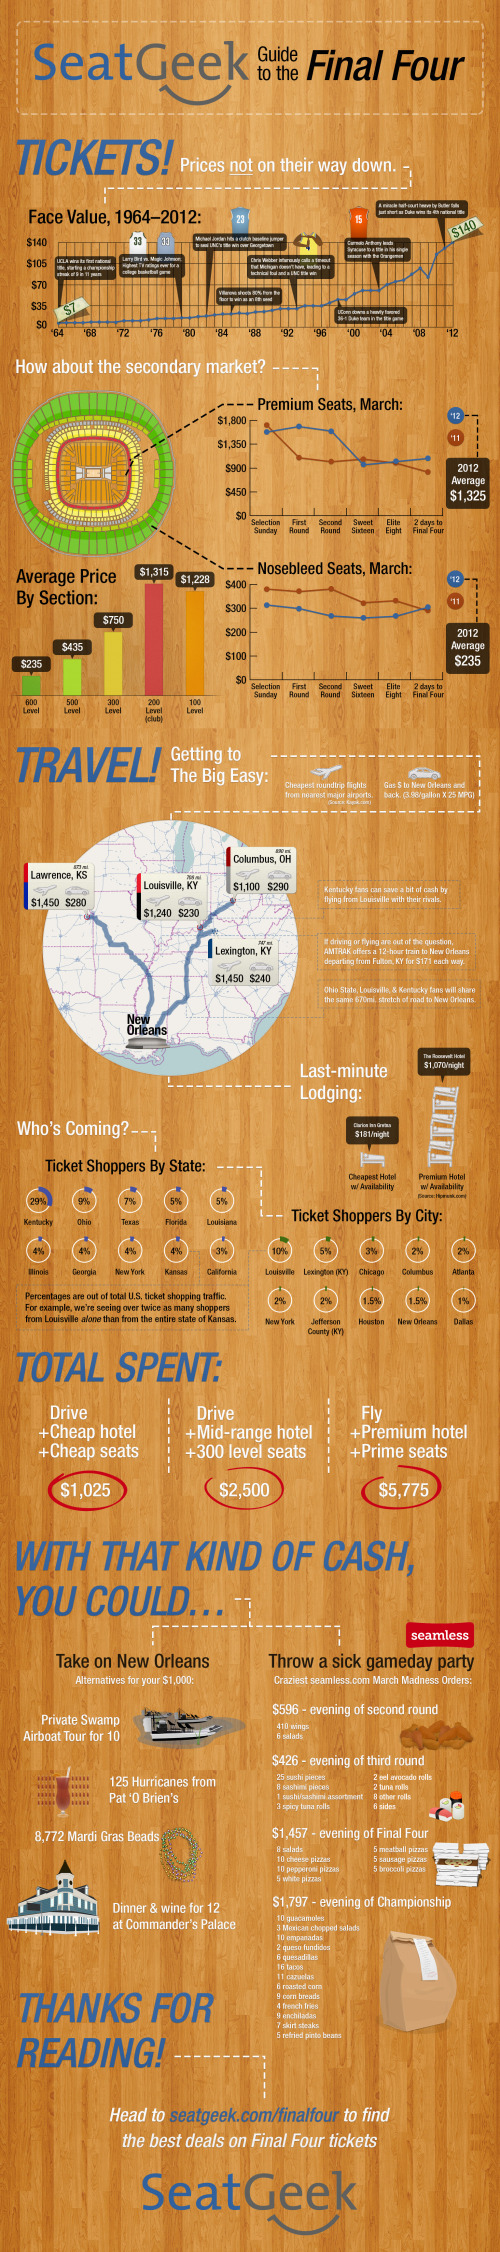 Guide to the Final Four Ticket Pricing infographic